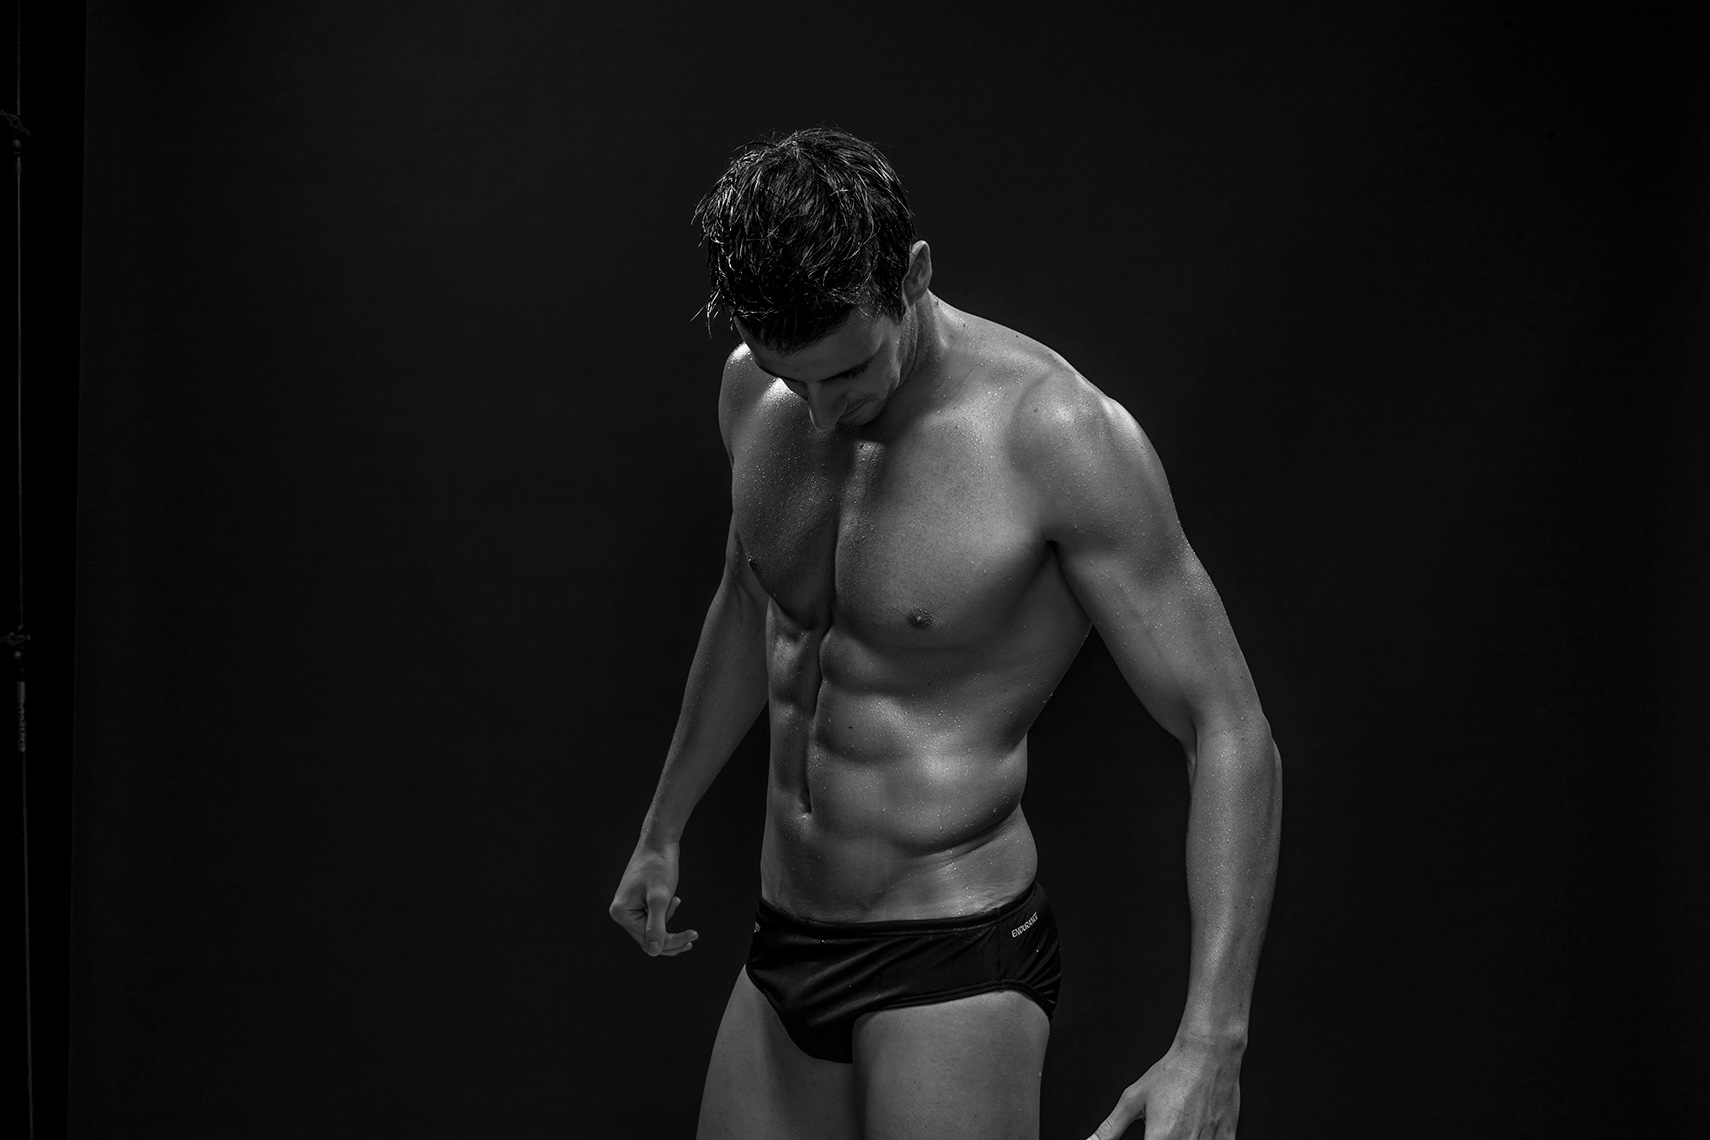 ADAM_TAYLOR_JAMES_MAGNUSSEN_01